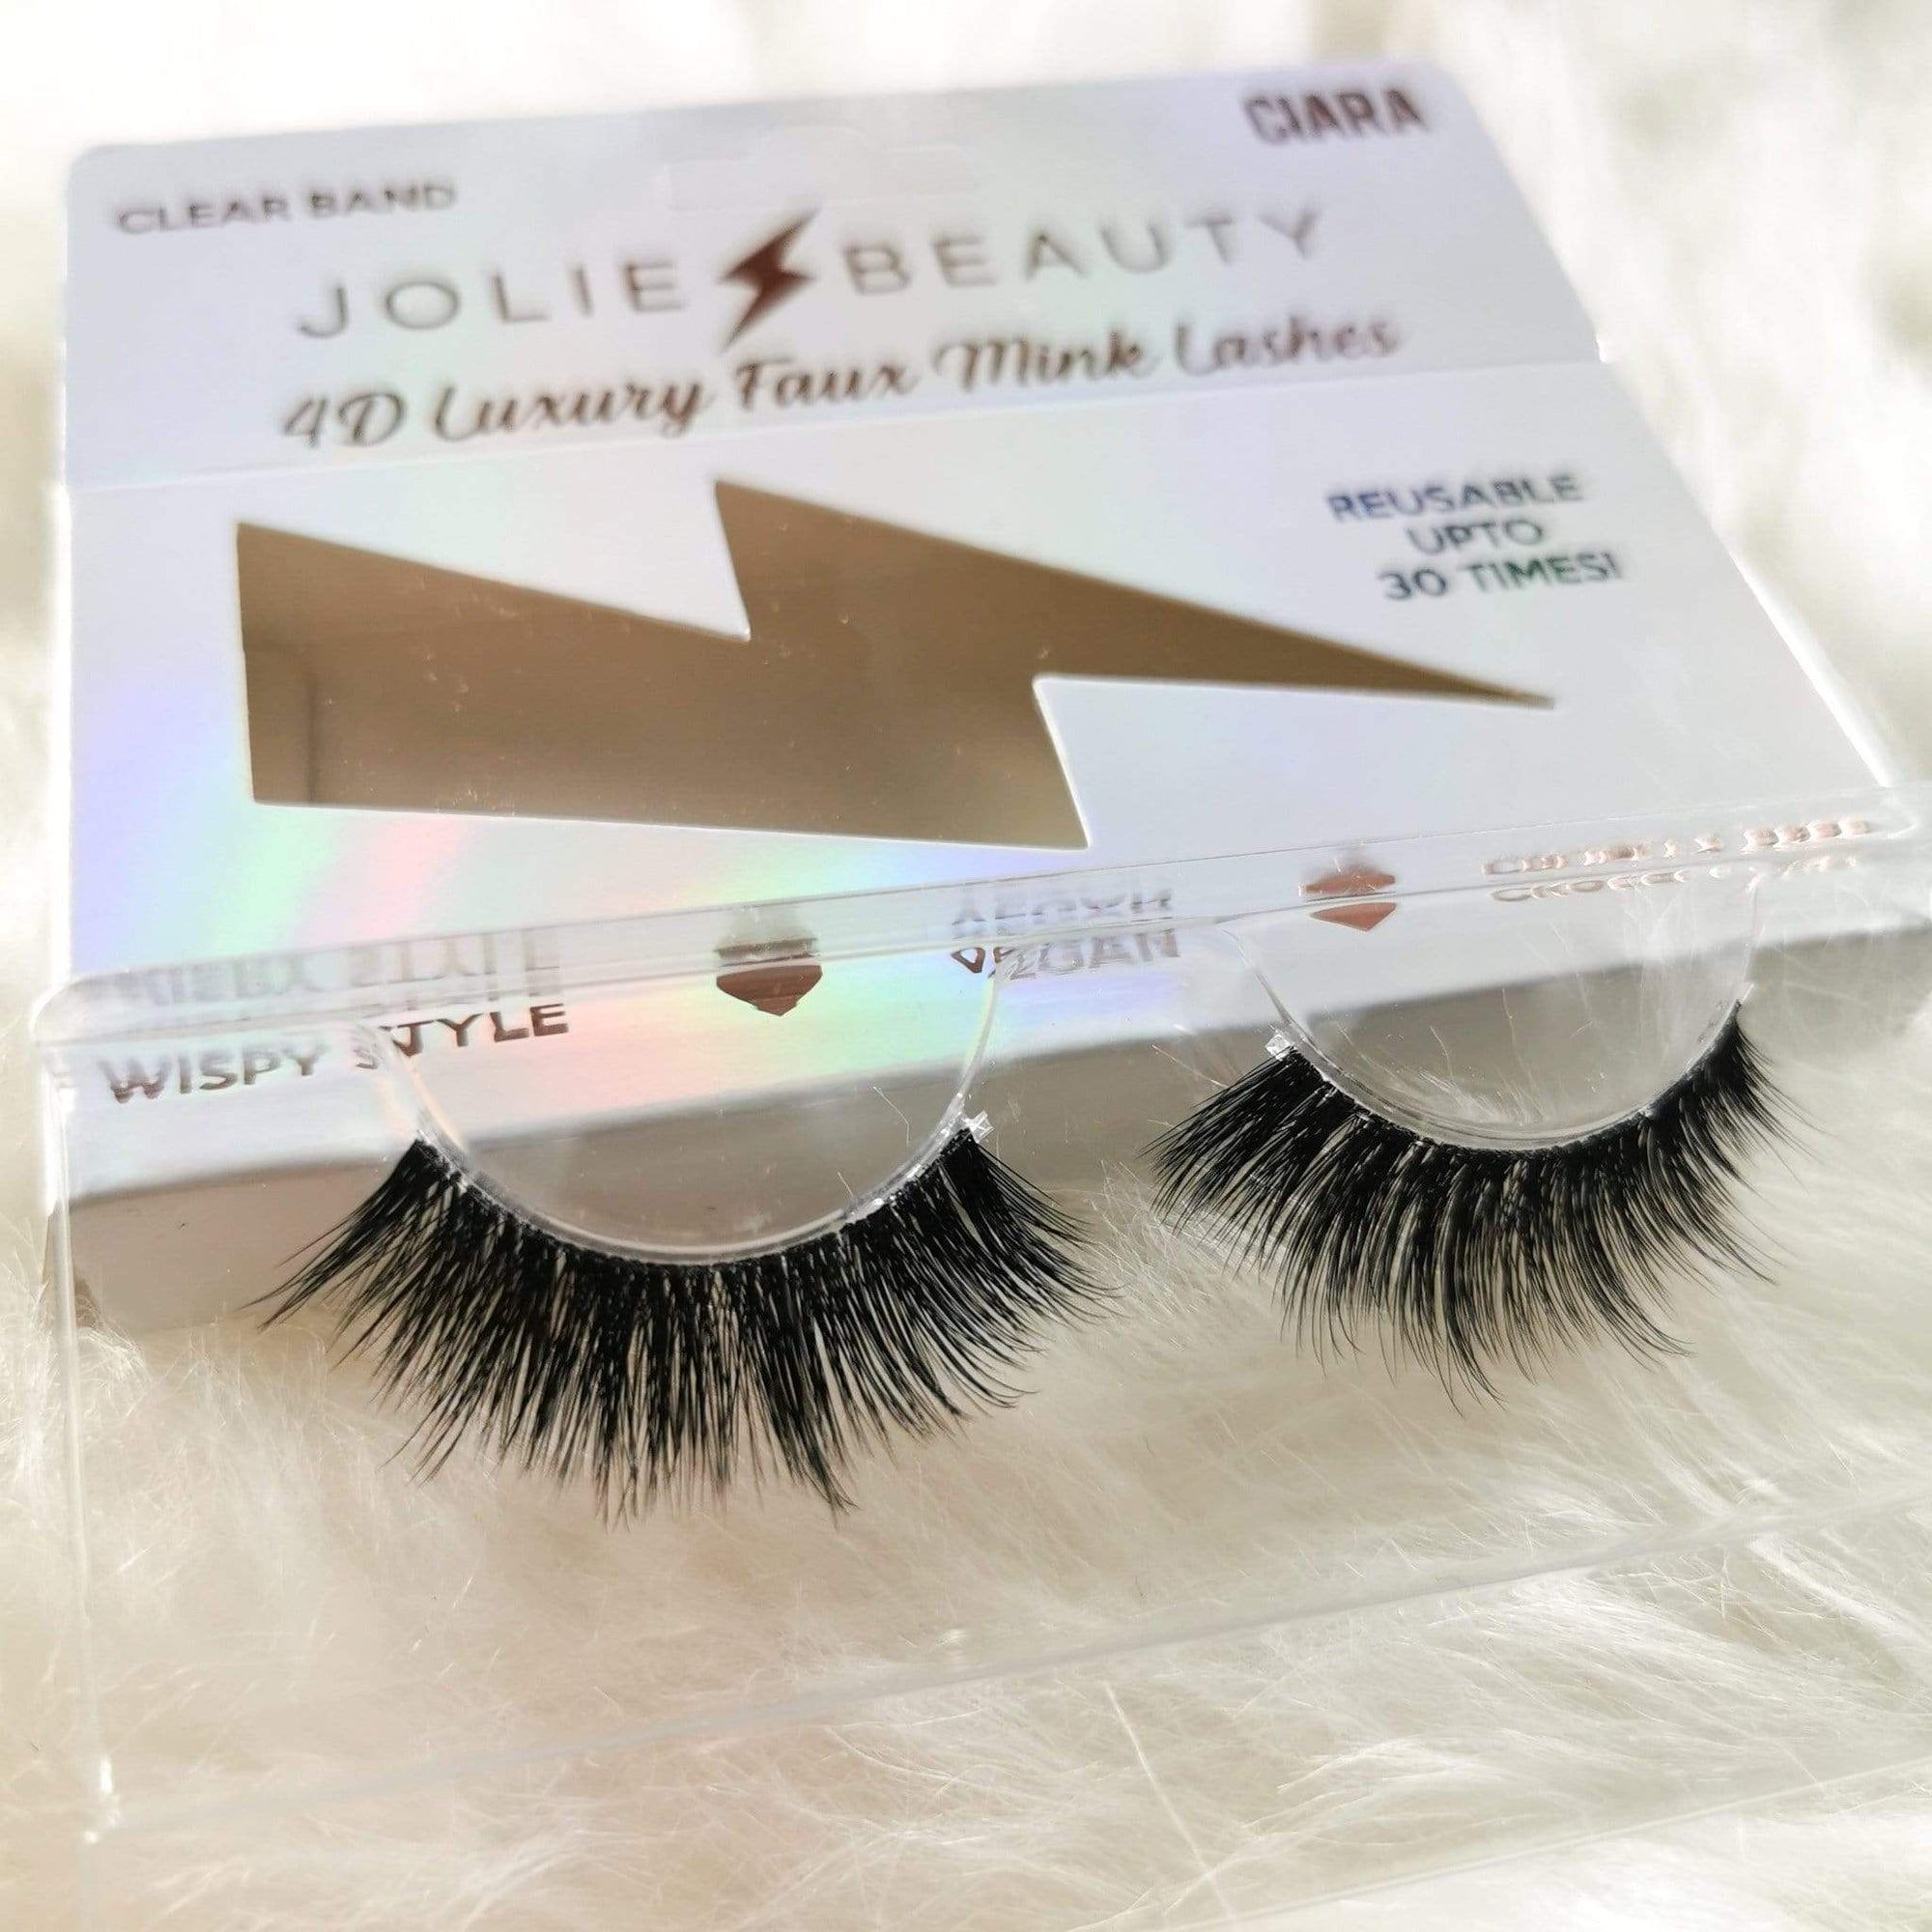 Jolie Beauty Lashes - Wispy Collection - Ciara